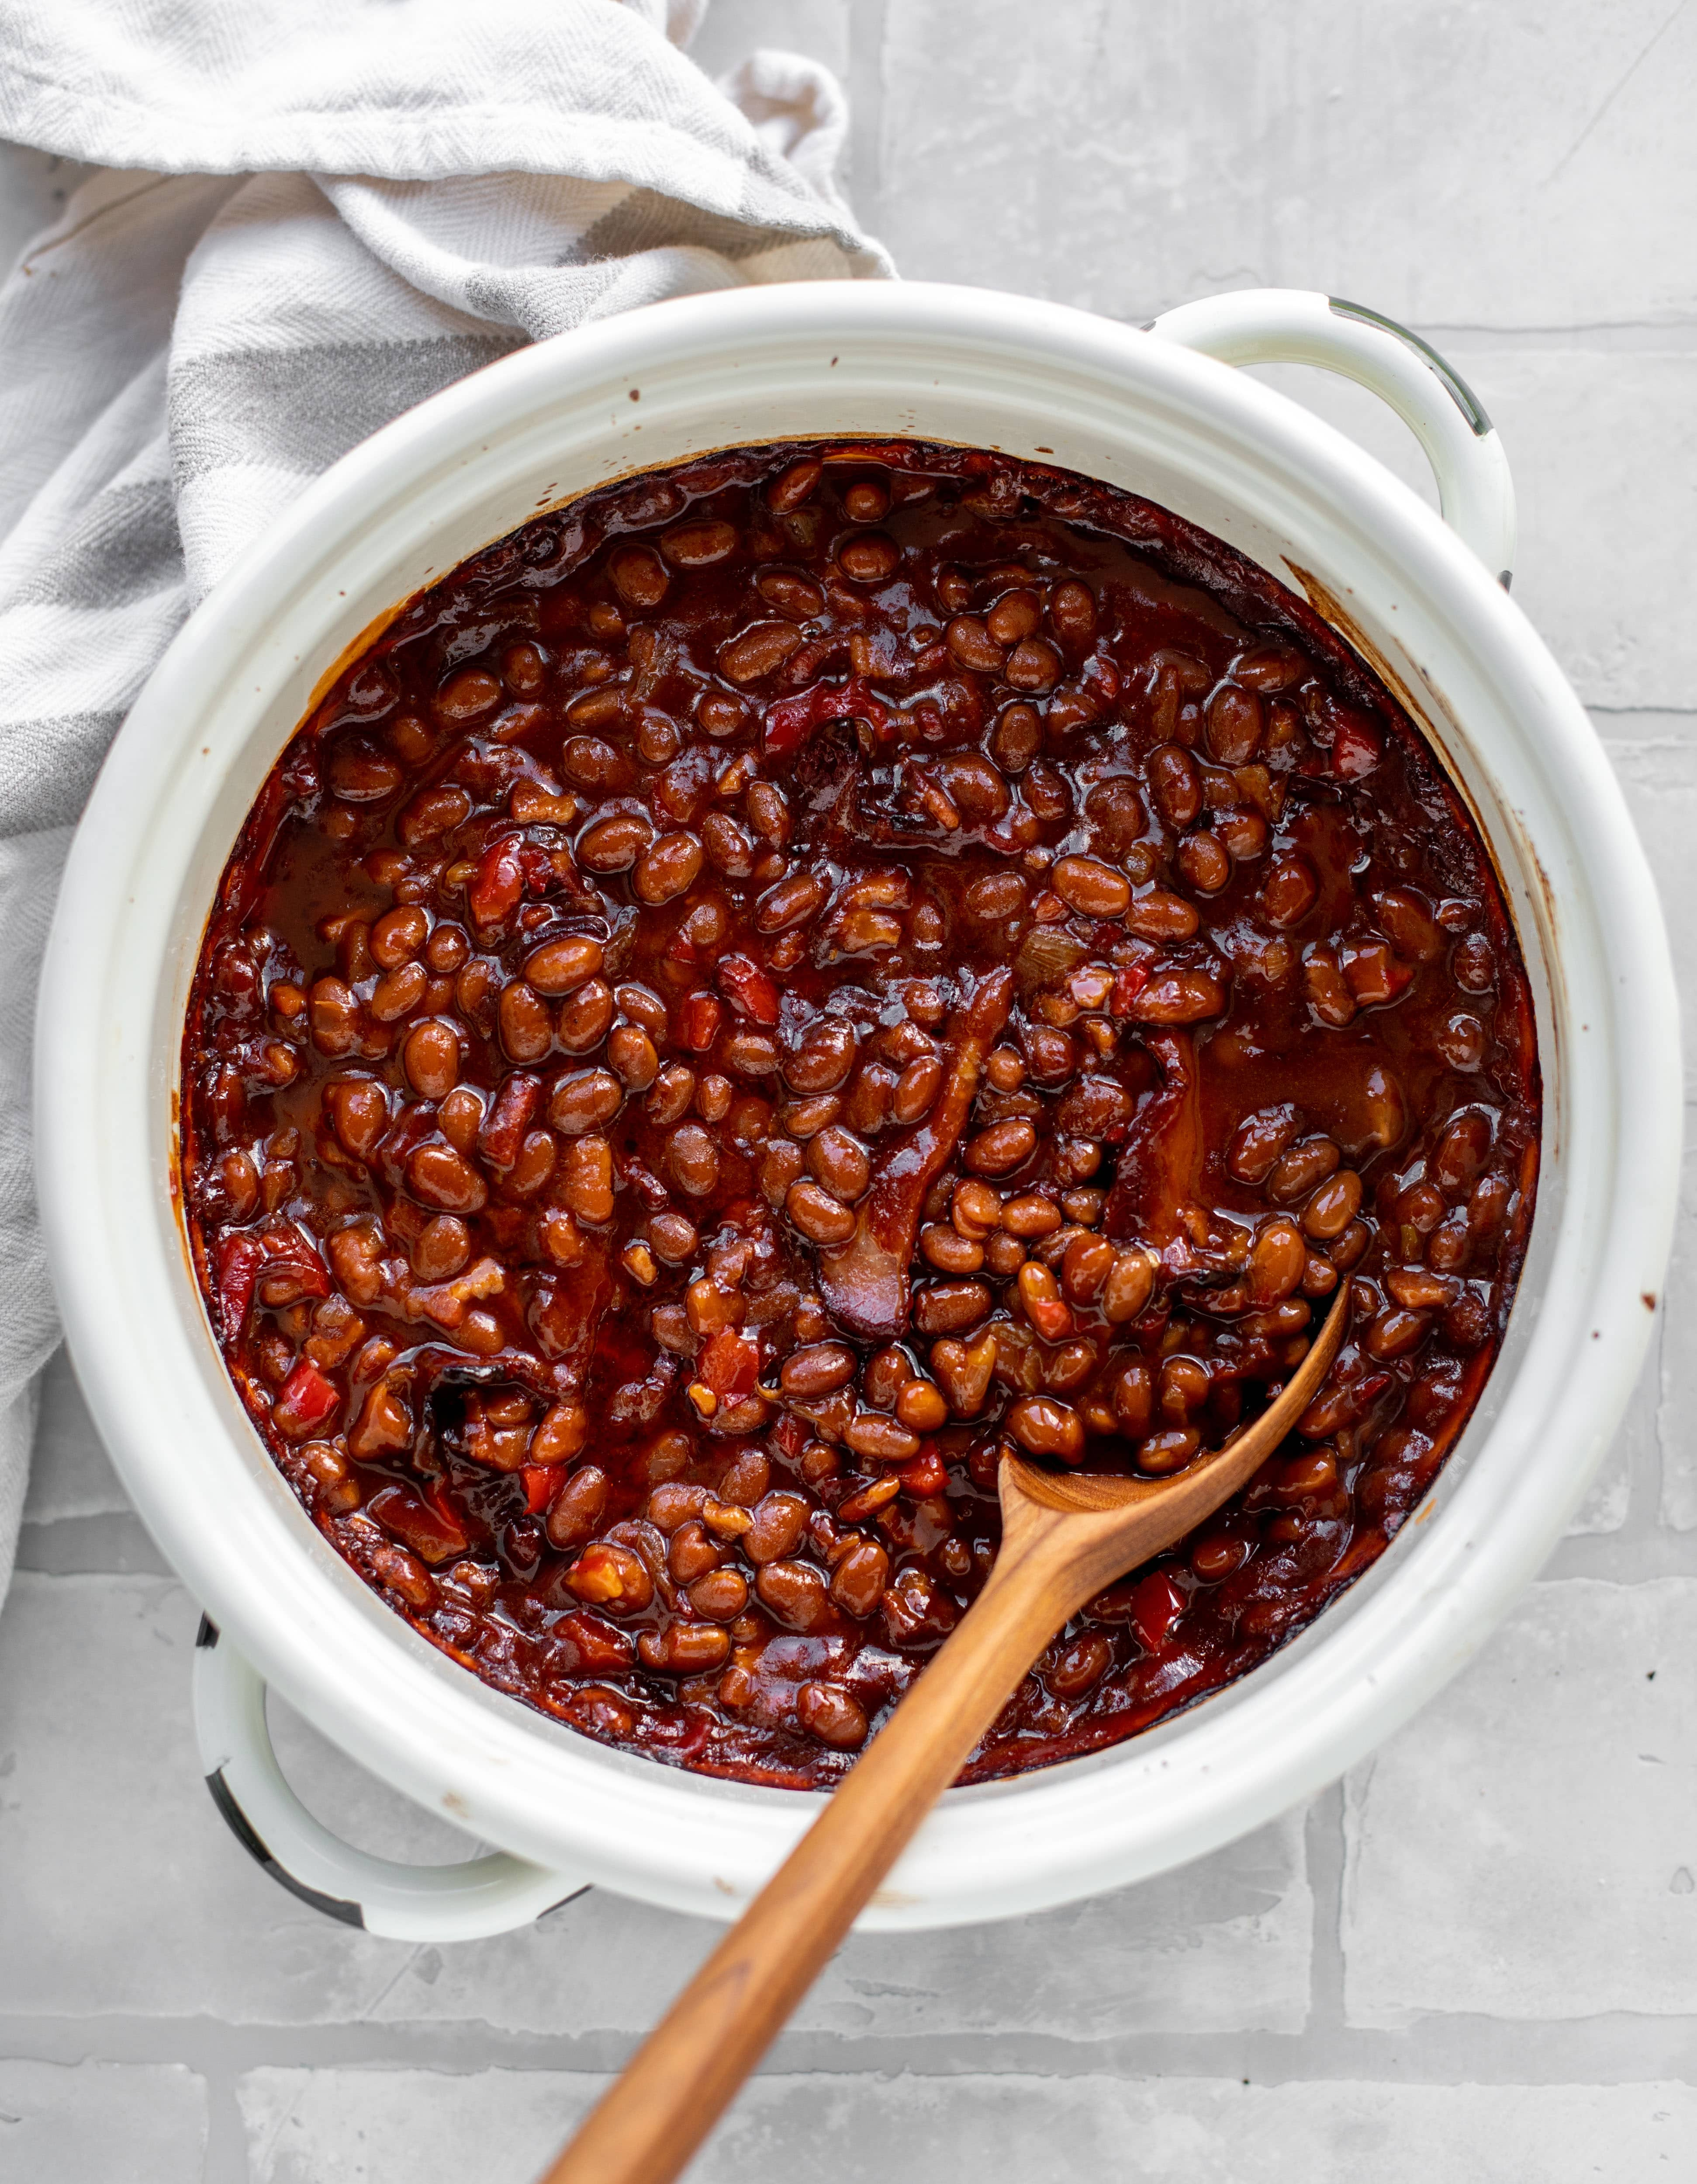 Saucy, Smoky Baked Beans